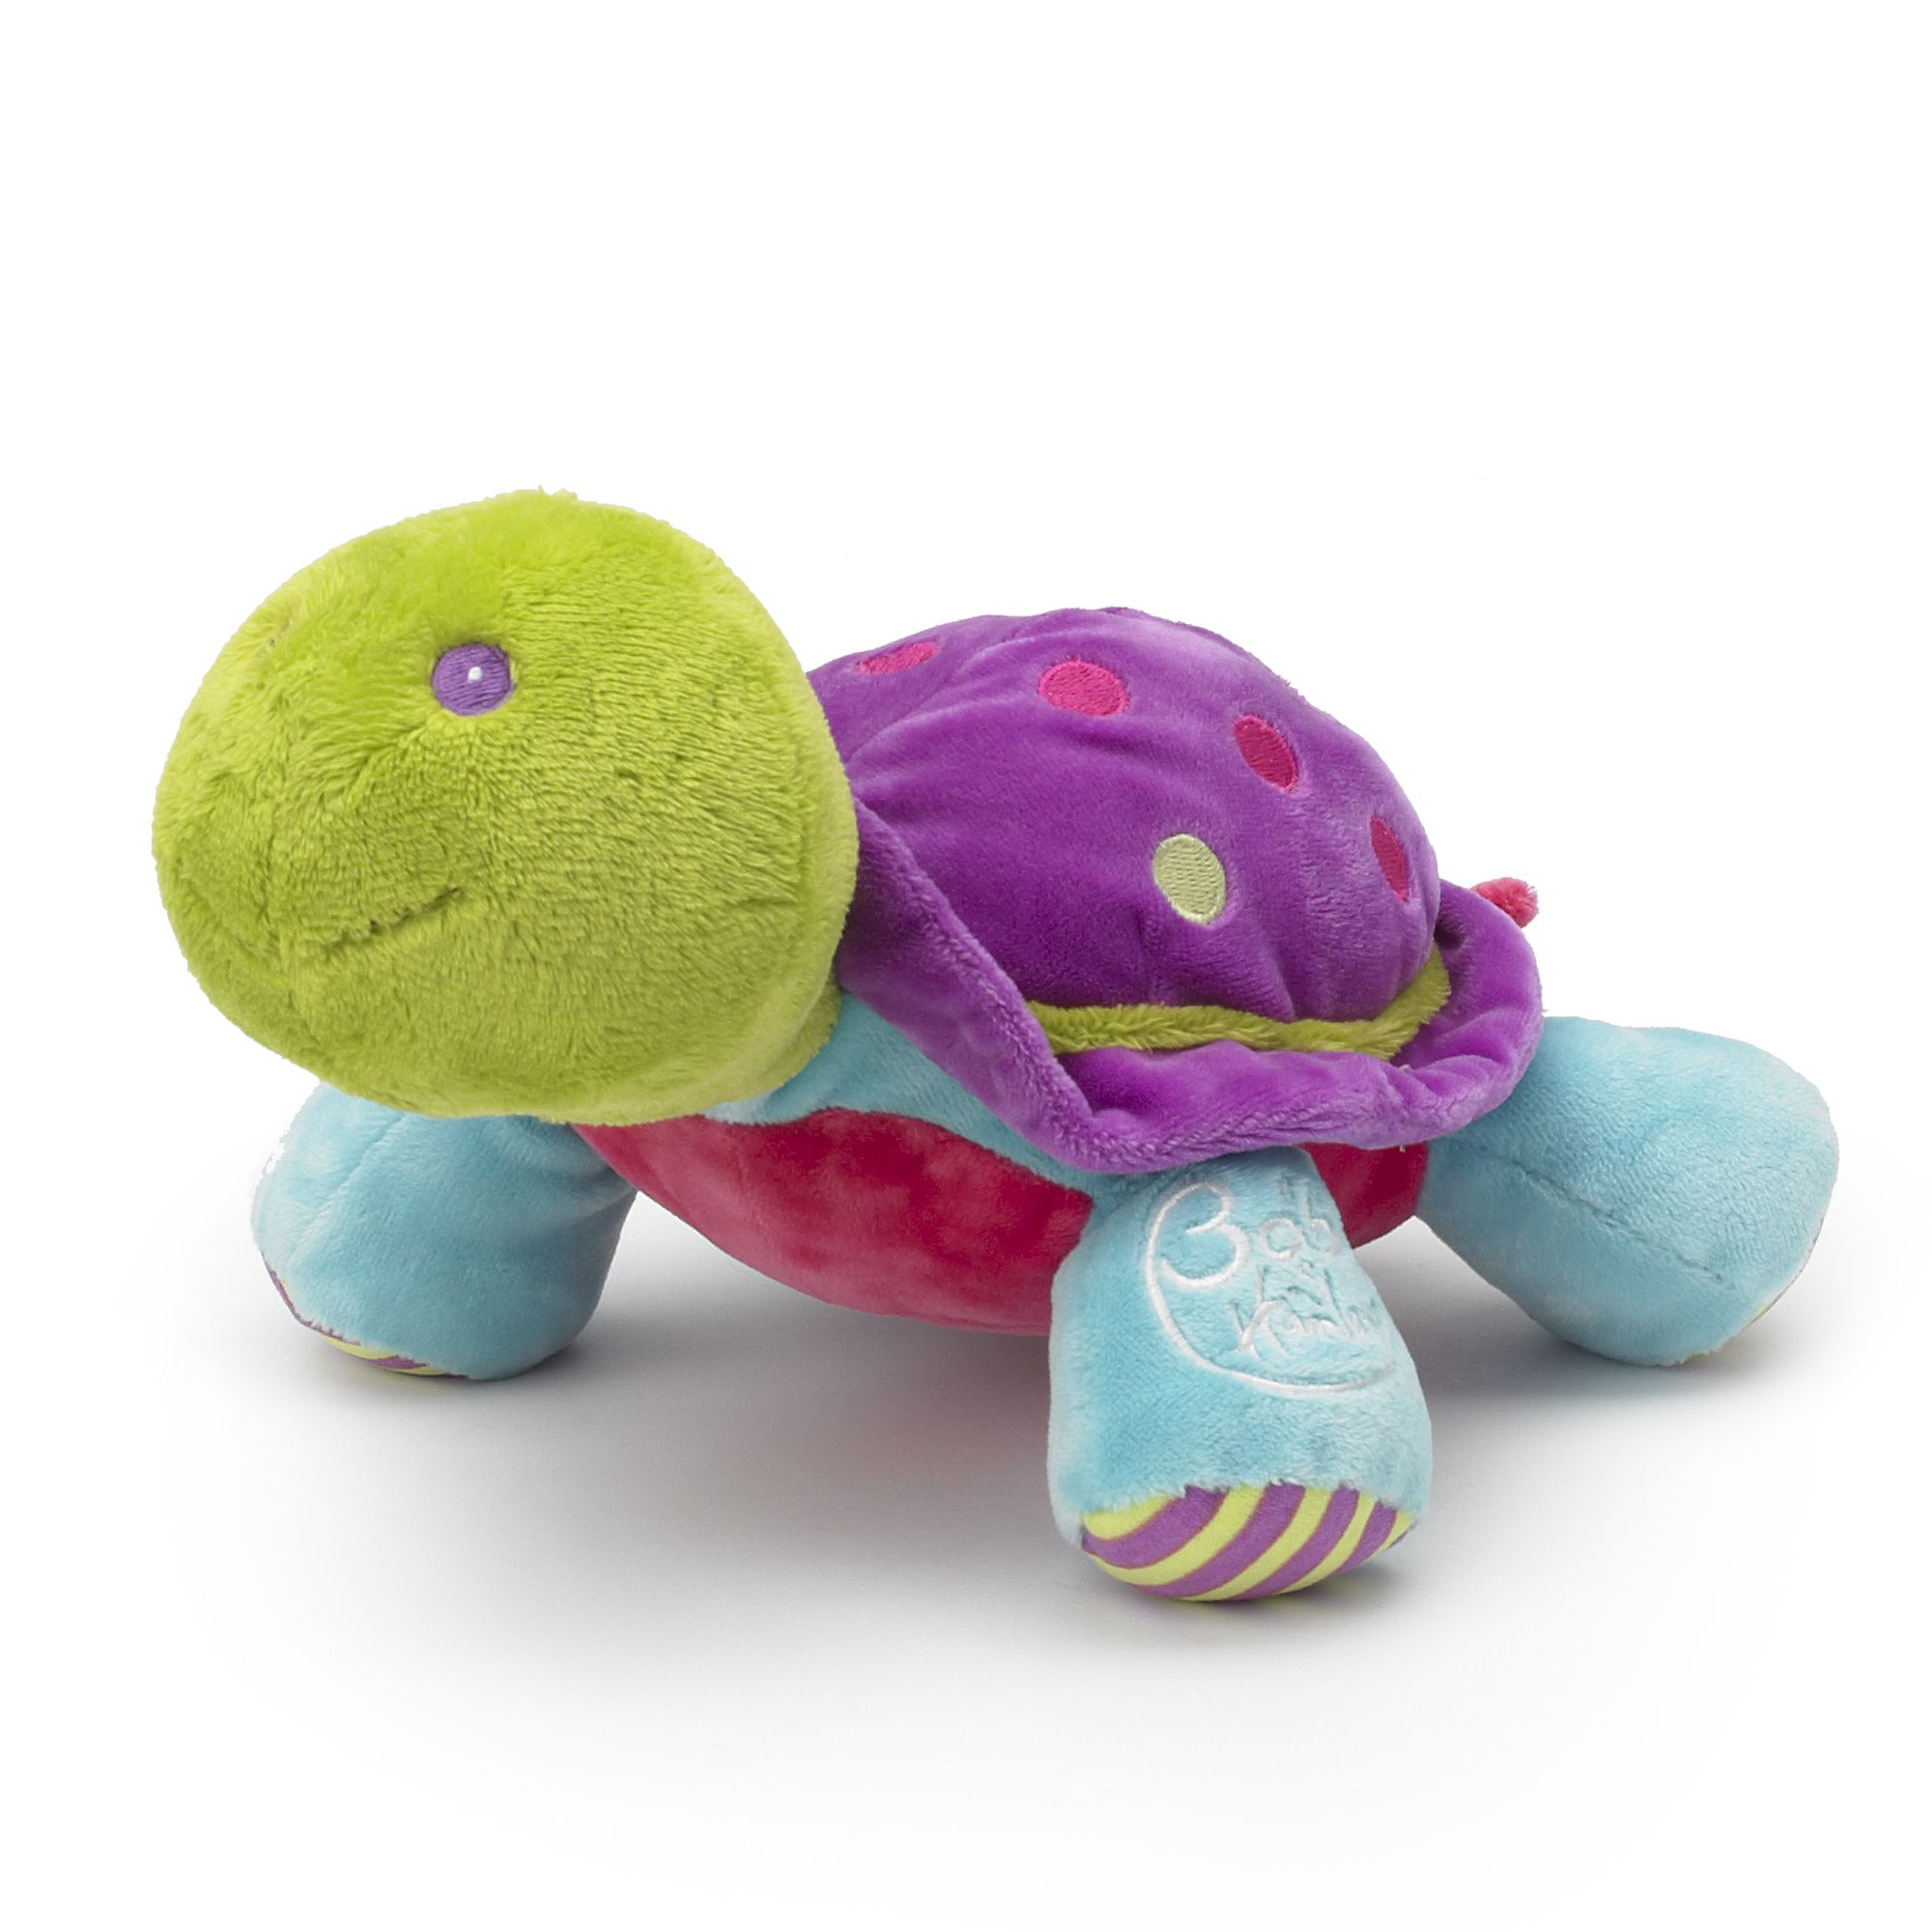 Toddle turtle plush